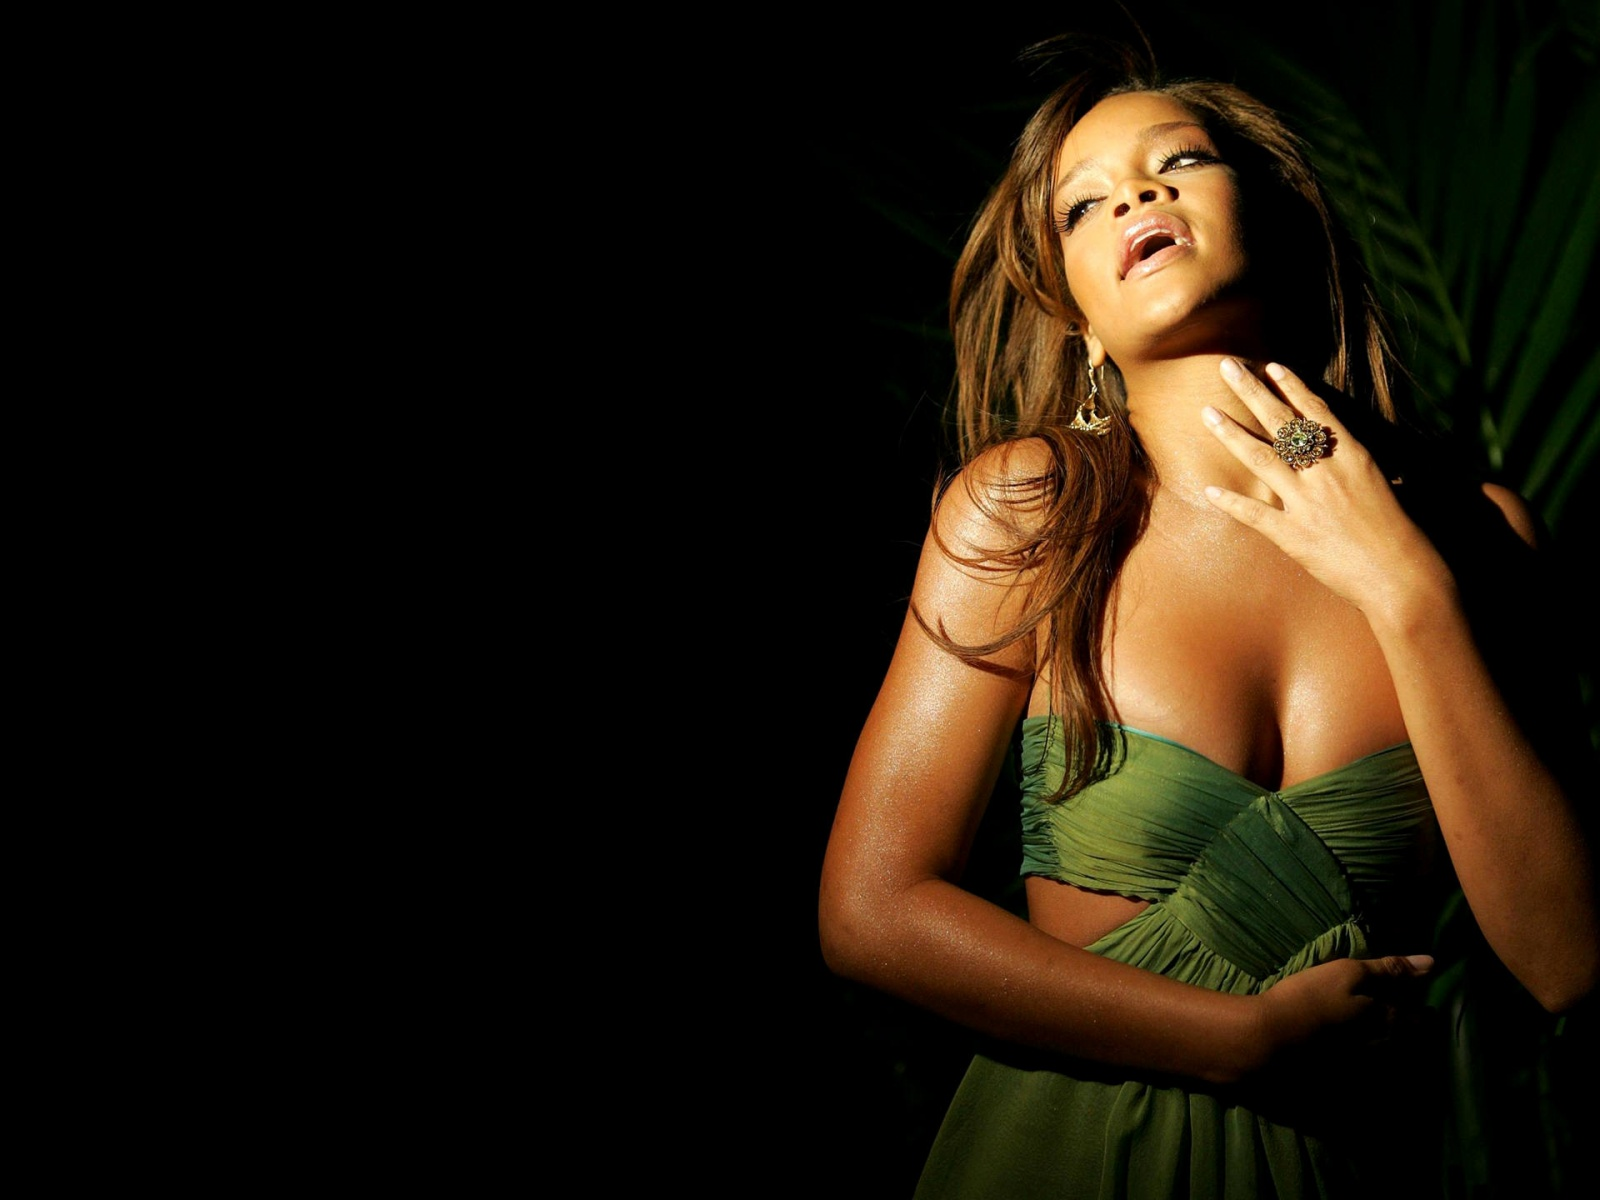 rihanna wallpaper hq wallpaper - photo #37